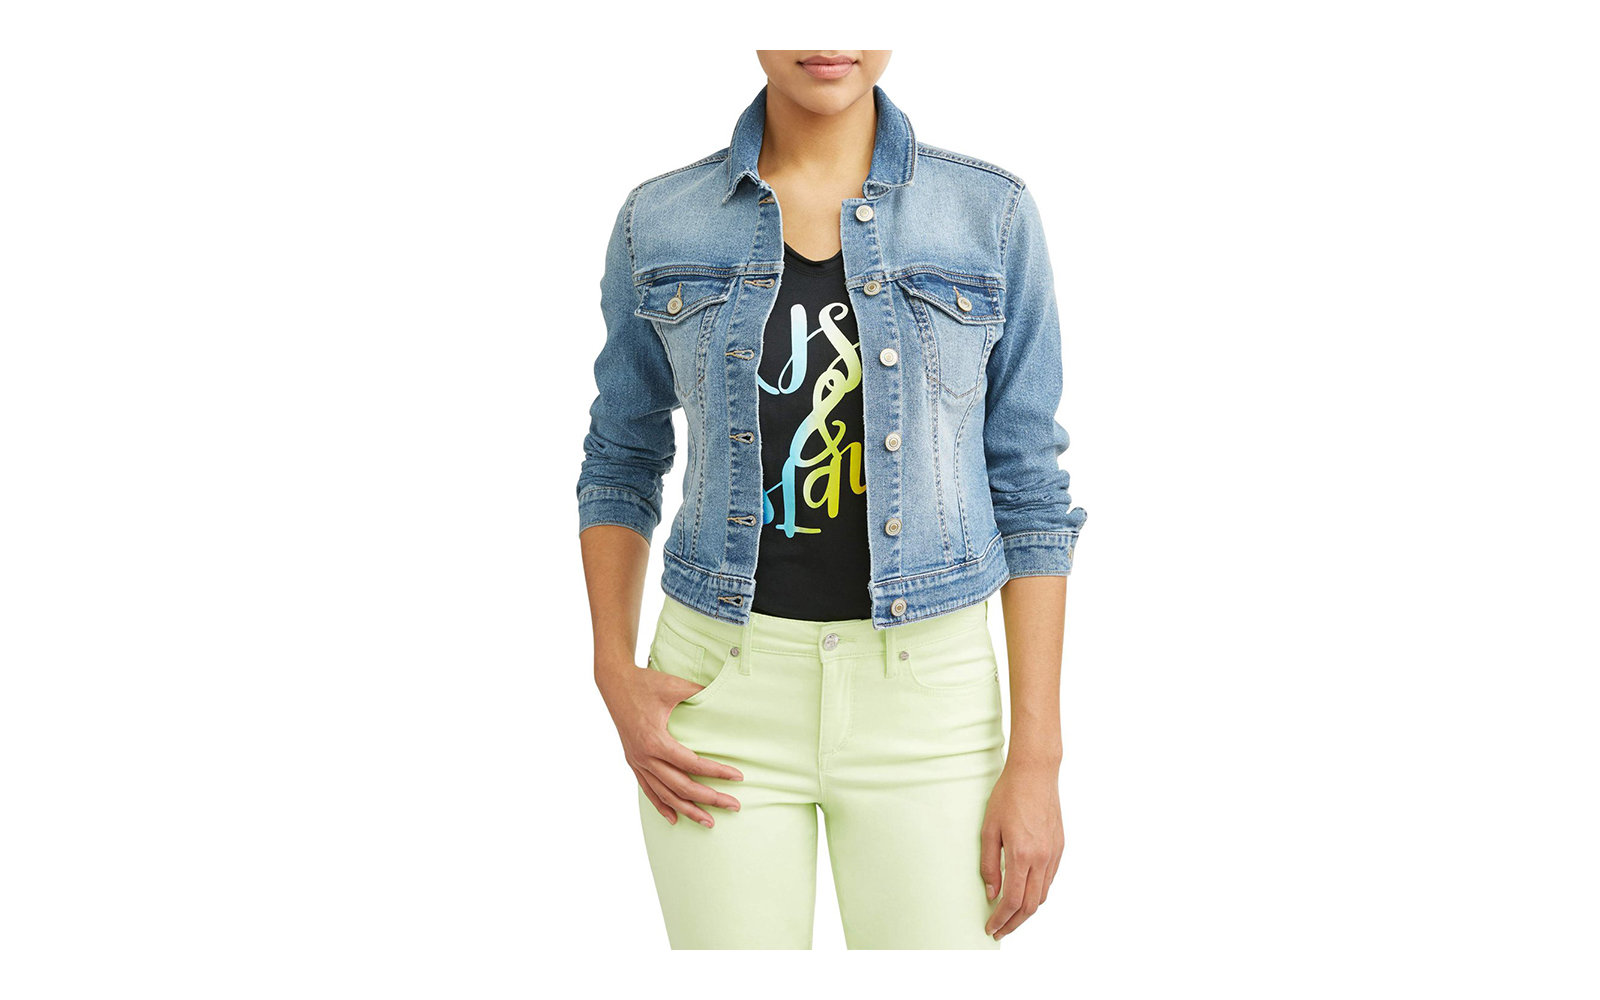 Sofia Jeans by Sofia Vergara Marianella Denim Jacket